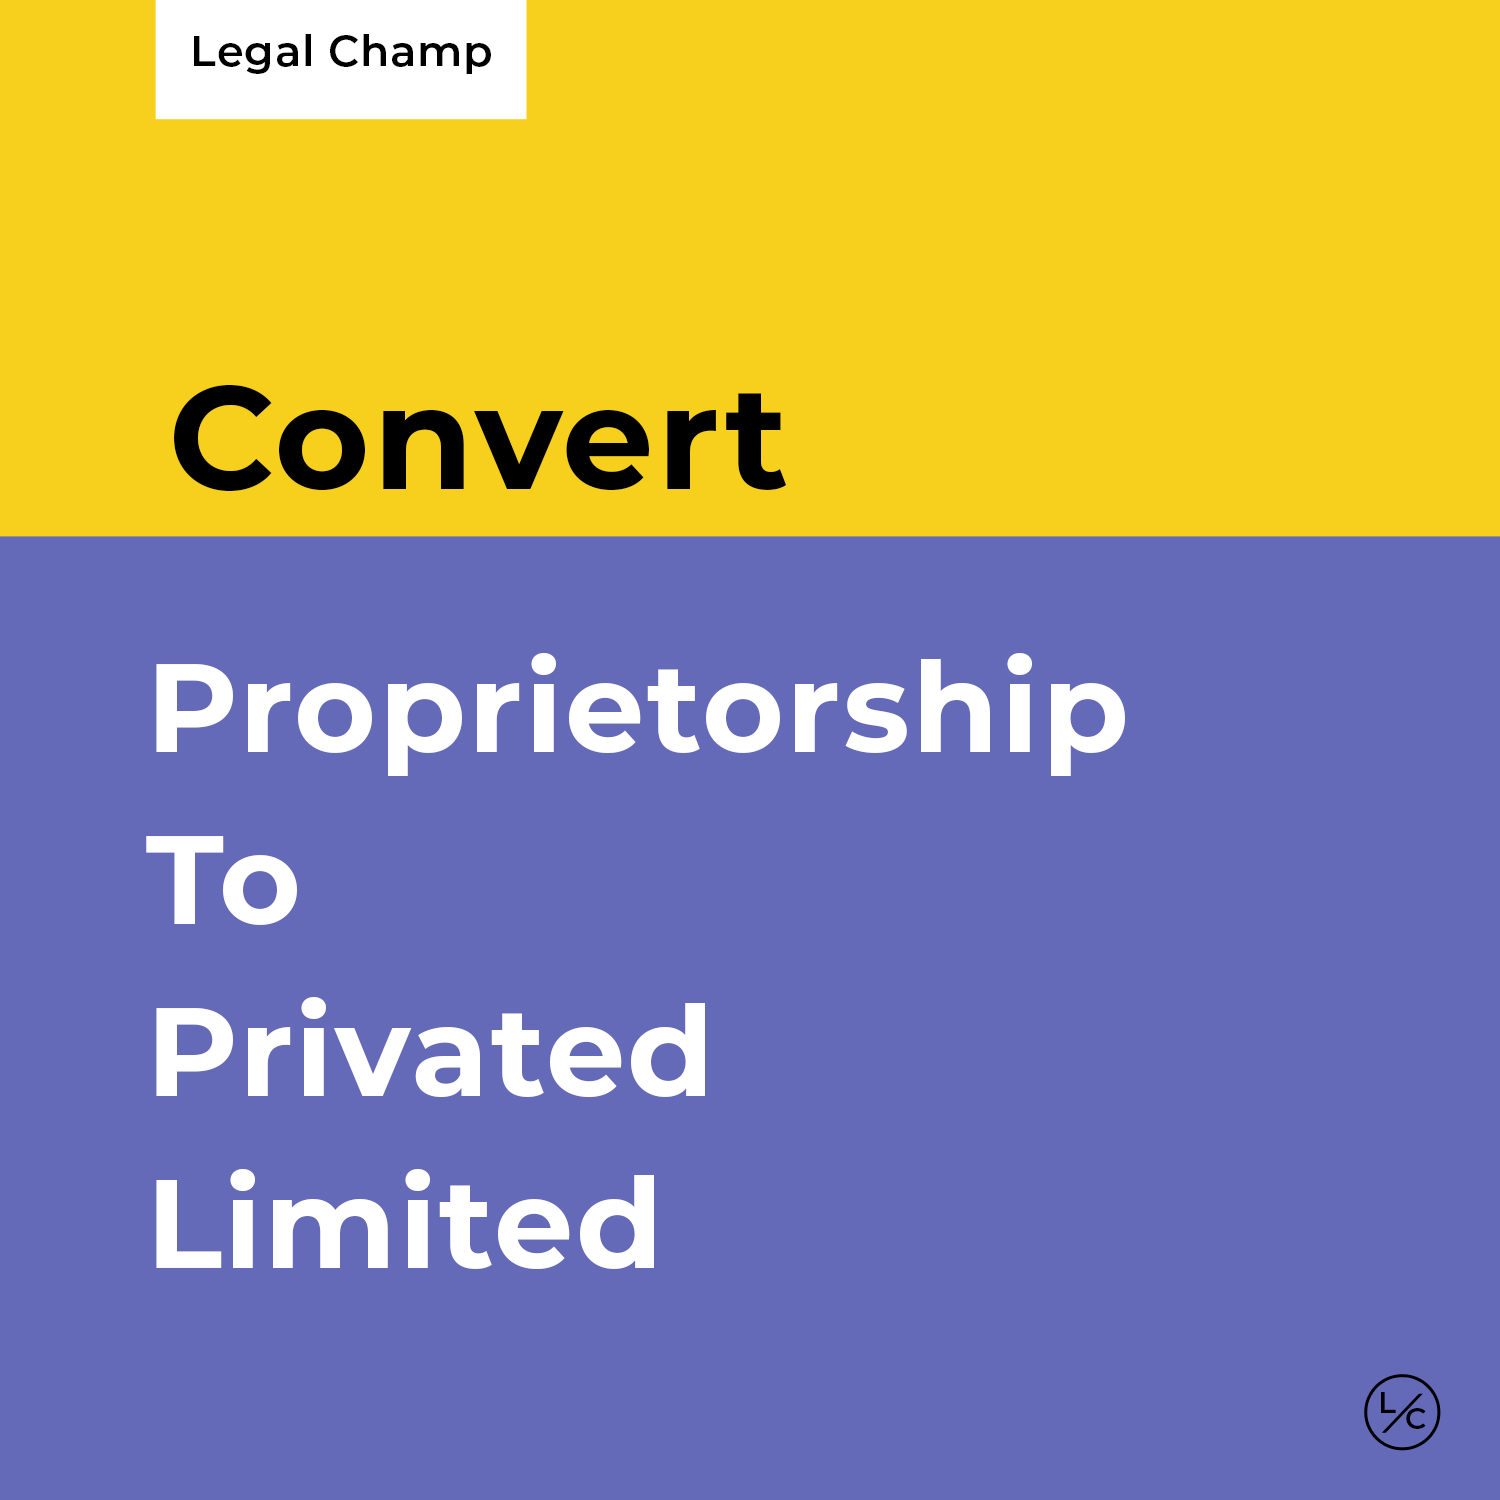 Proprietorship to Private Limited